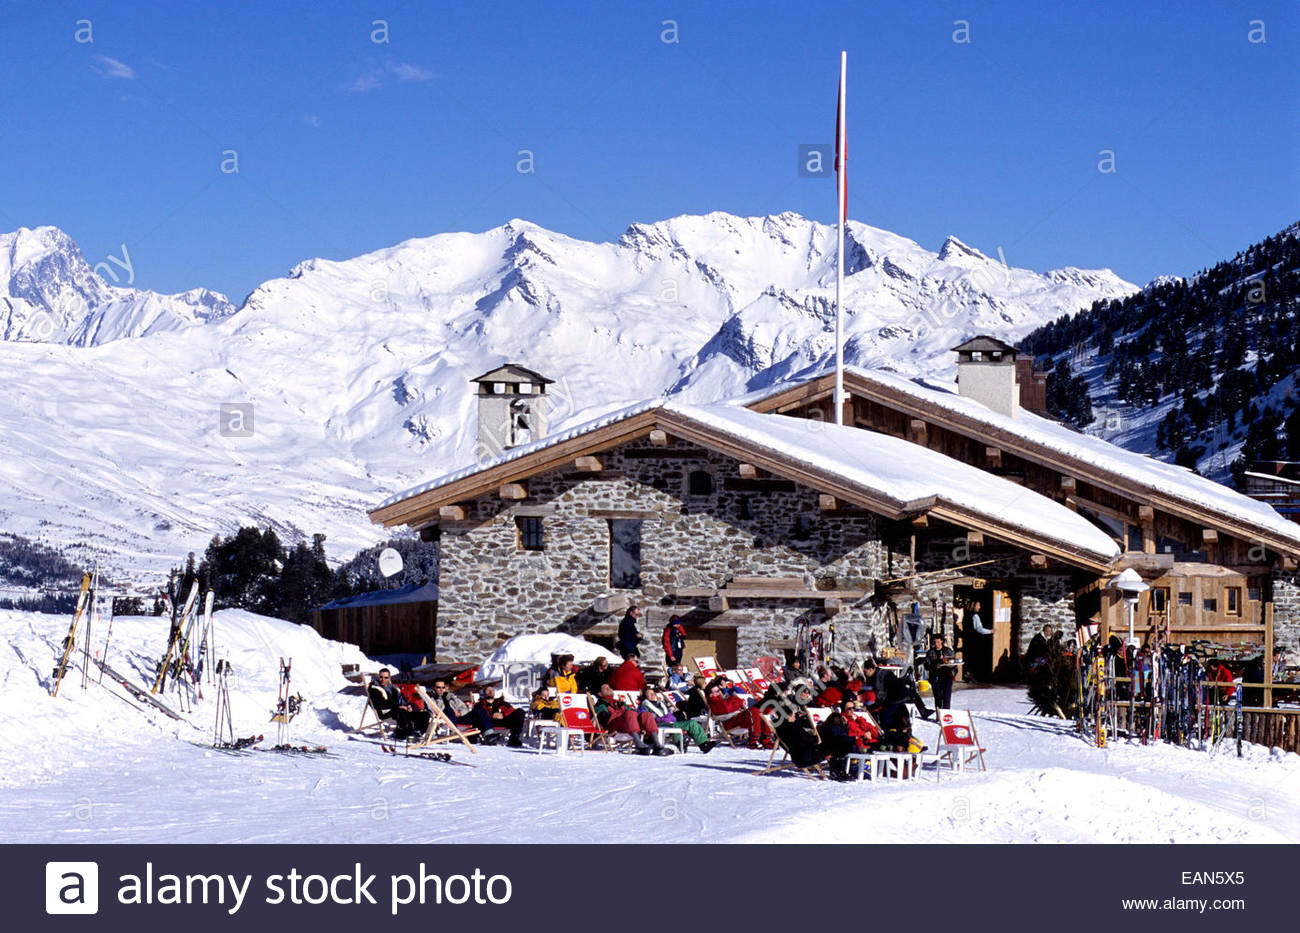 People sunbathing on a outdoor cafe. Les Arcs village. Savoie, France. - Stock Image